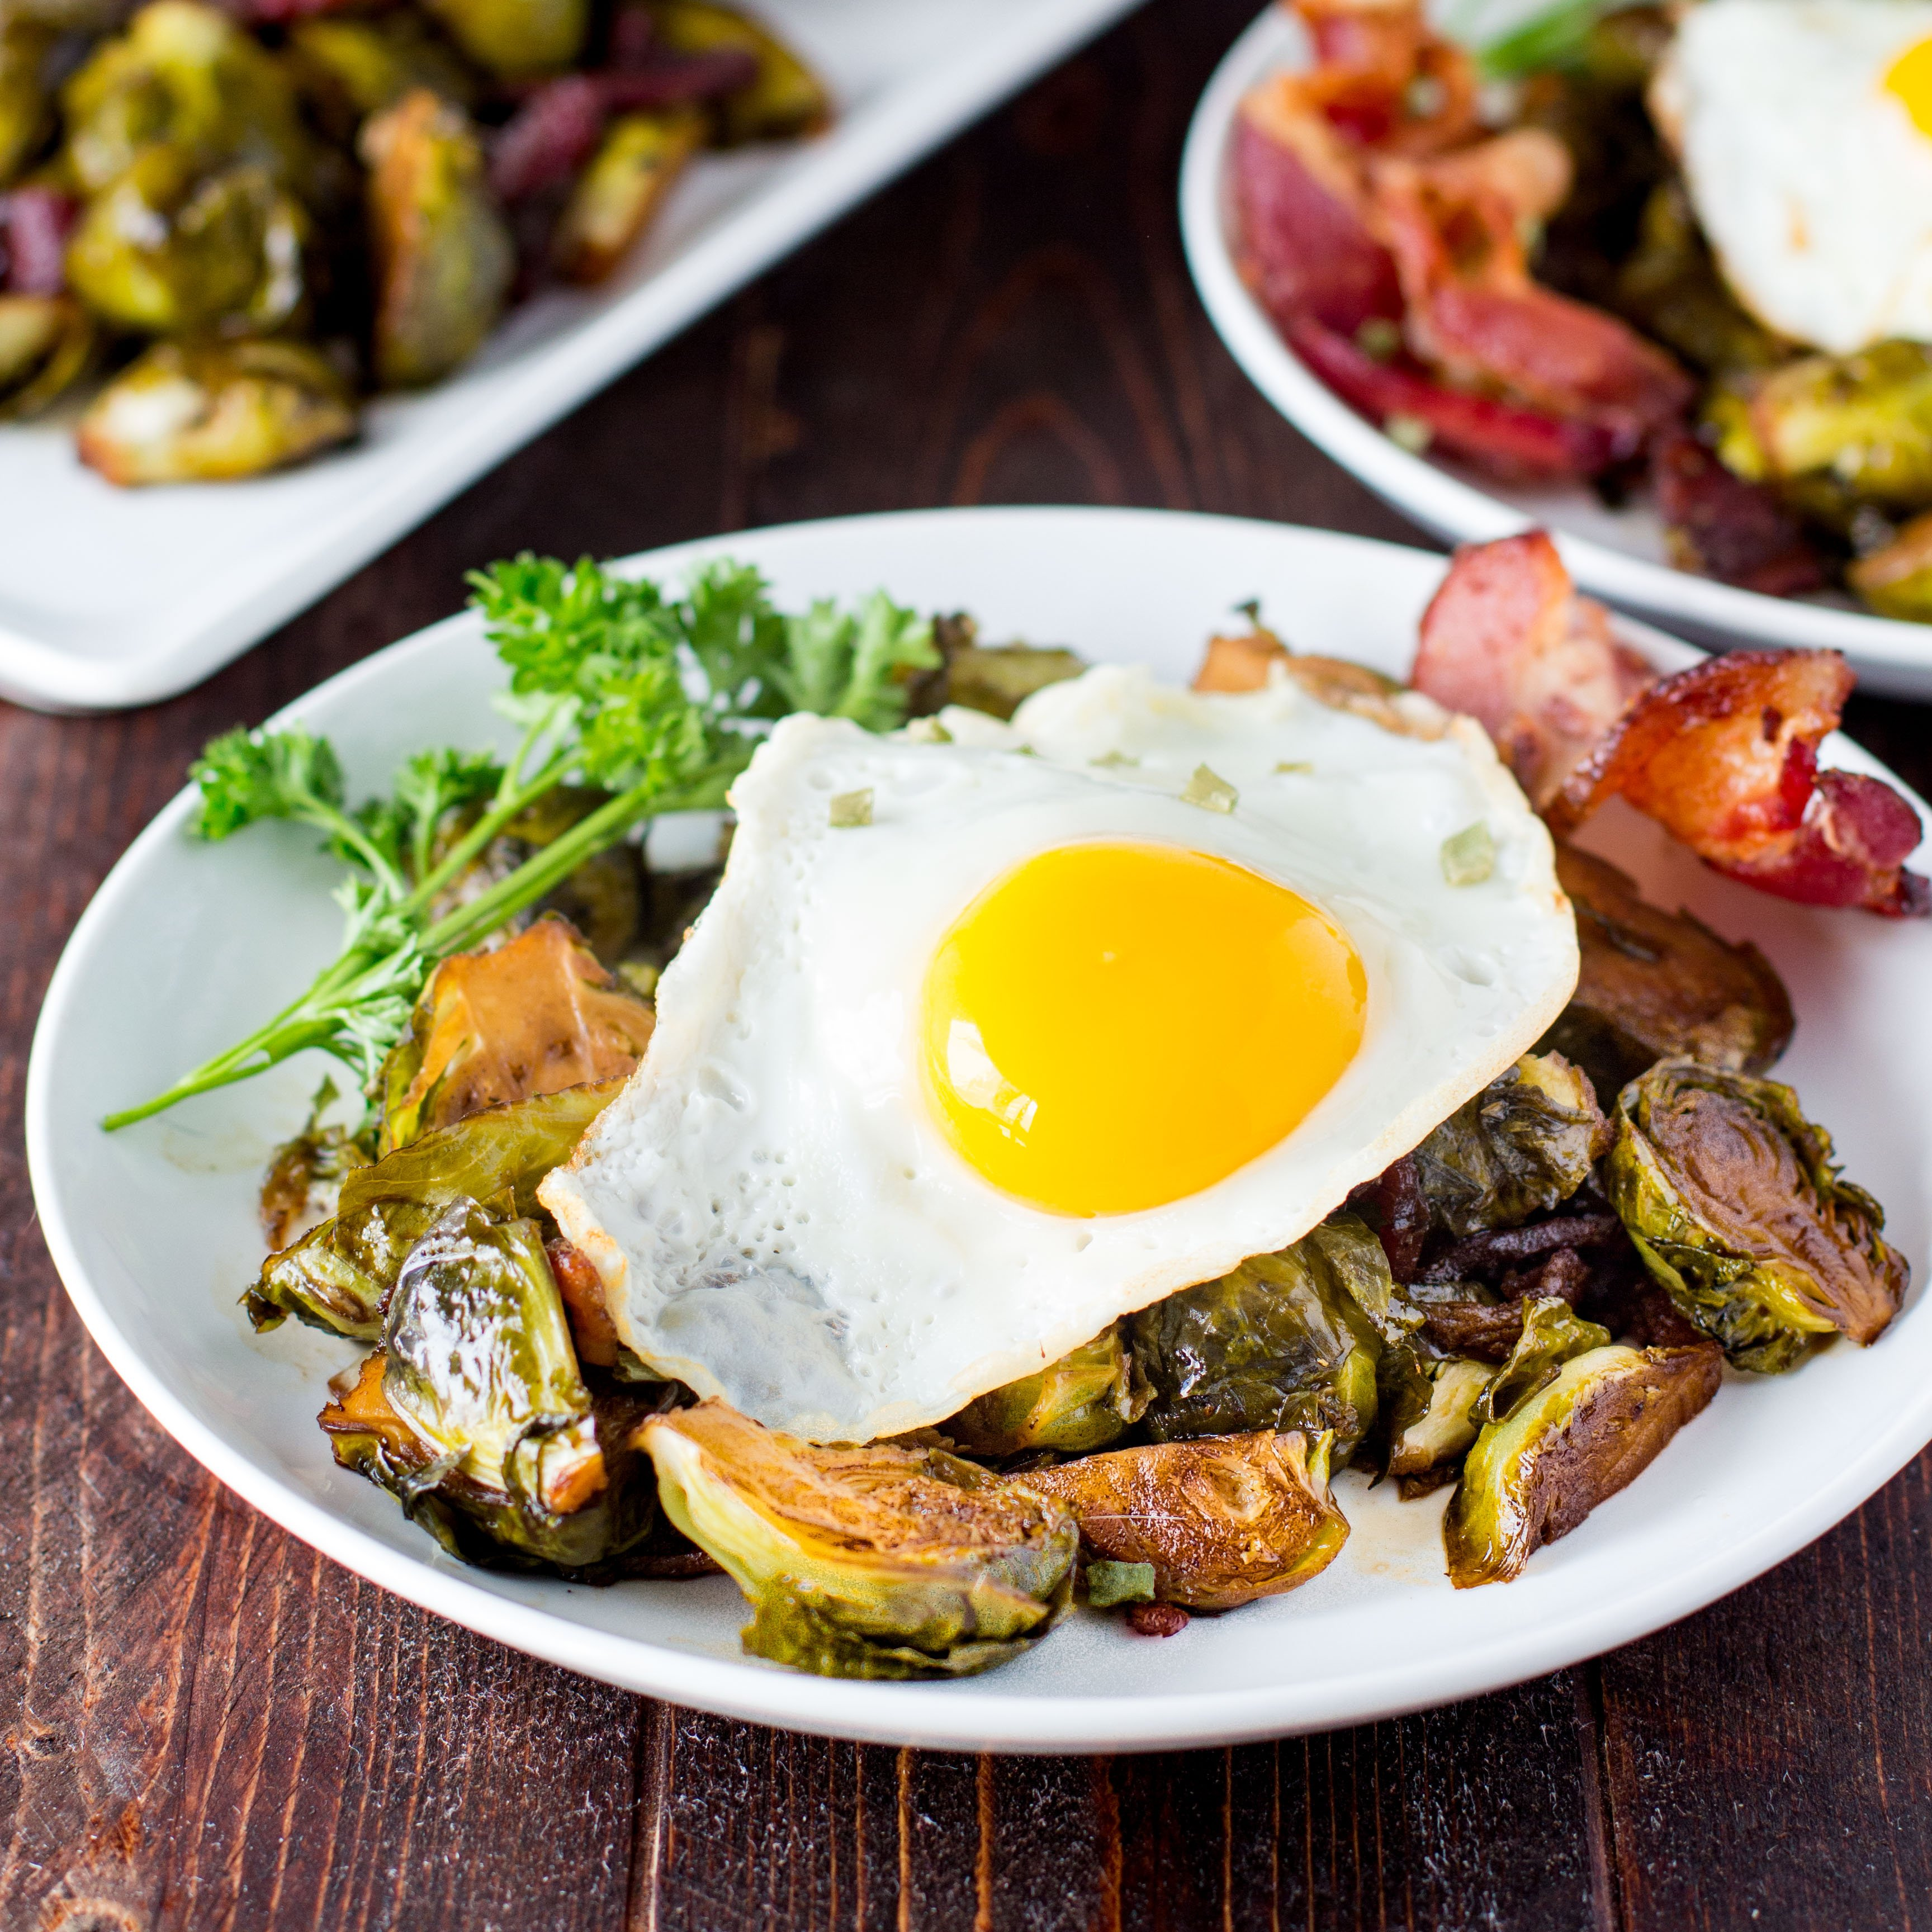 12 Ways to Turn Thanksgiving Leftovers Into Glorious Breakfast Food - Check out some great ideas to help you turn all those delicious leftovers into breakfast! Turn leftovers in a super healthy breakfast!